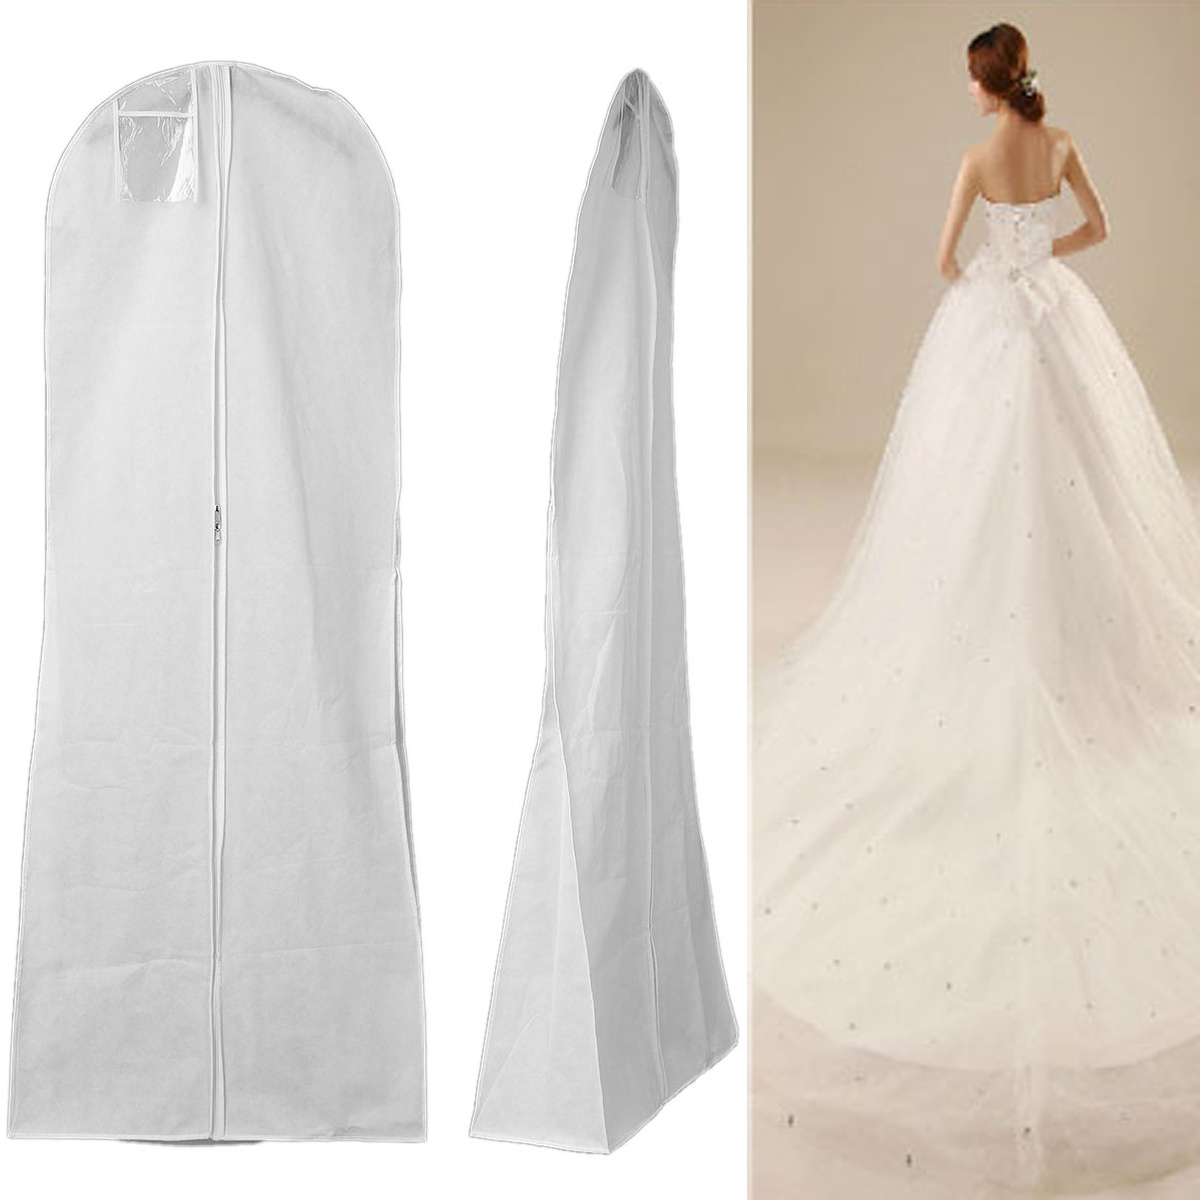 f1e8f0f91189 Details about Extra Wide Breathable Dress Garment Cloths Bag Long Bridal  Wedding Dresses Cover